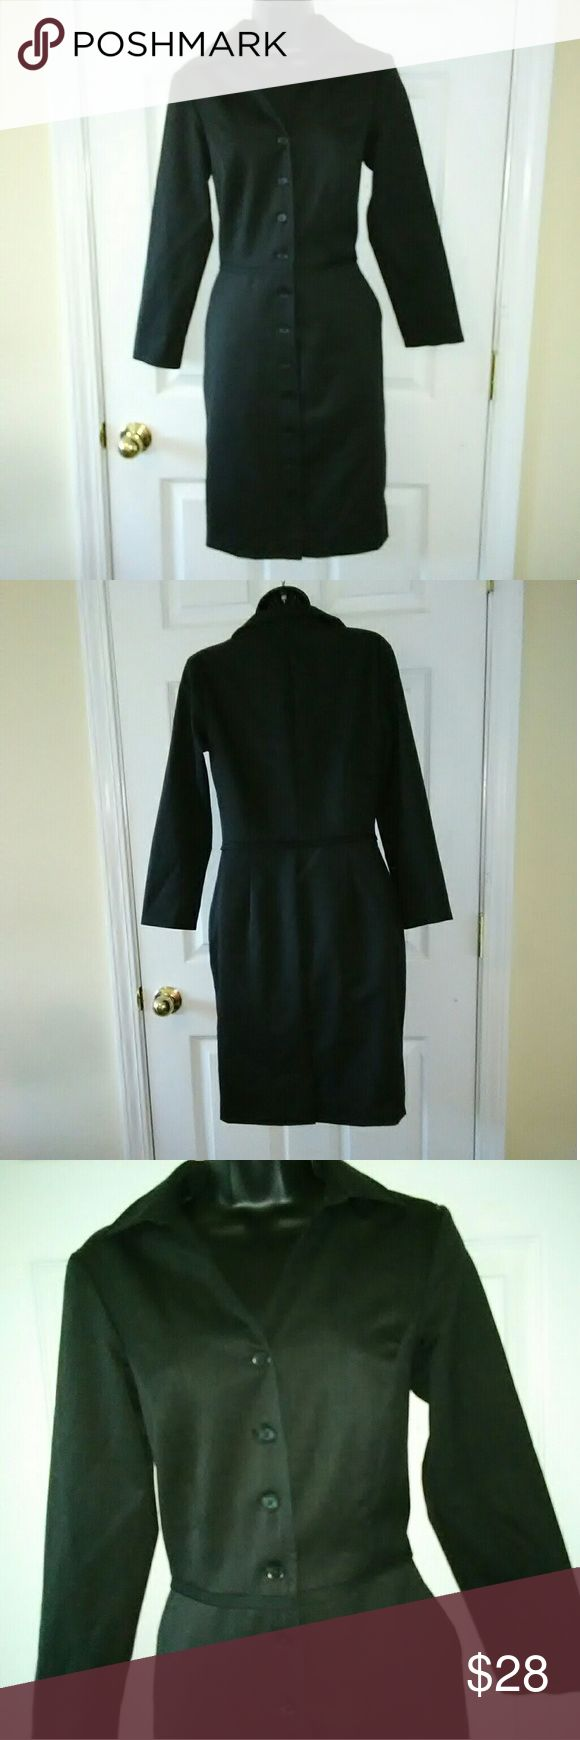 "American Airlines 4 genuine bc stewardess dress Mint condition.  16"" armpit to armpit 13.25"" across waist 22"" across hips 40"" length American Airlines Dresses"